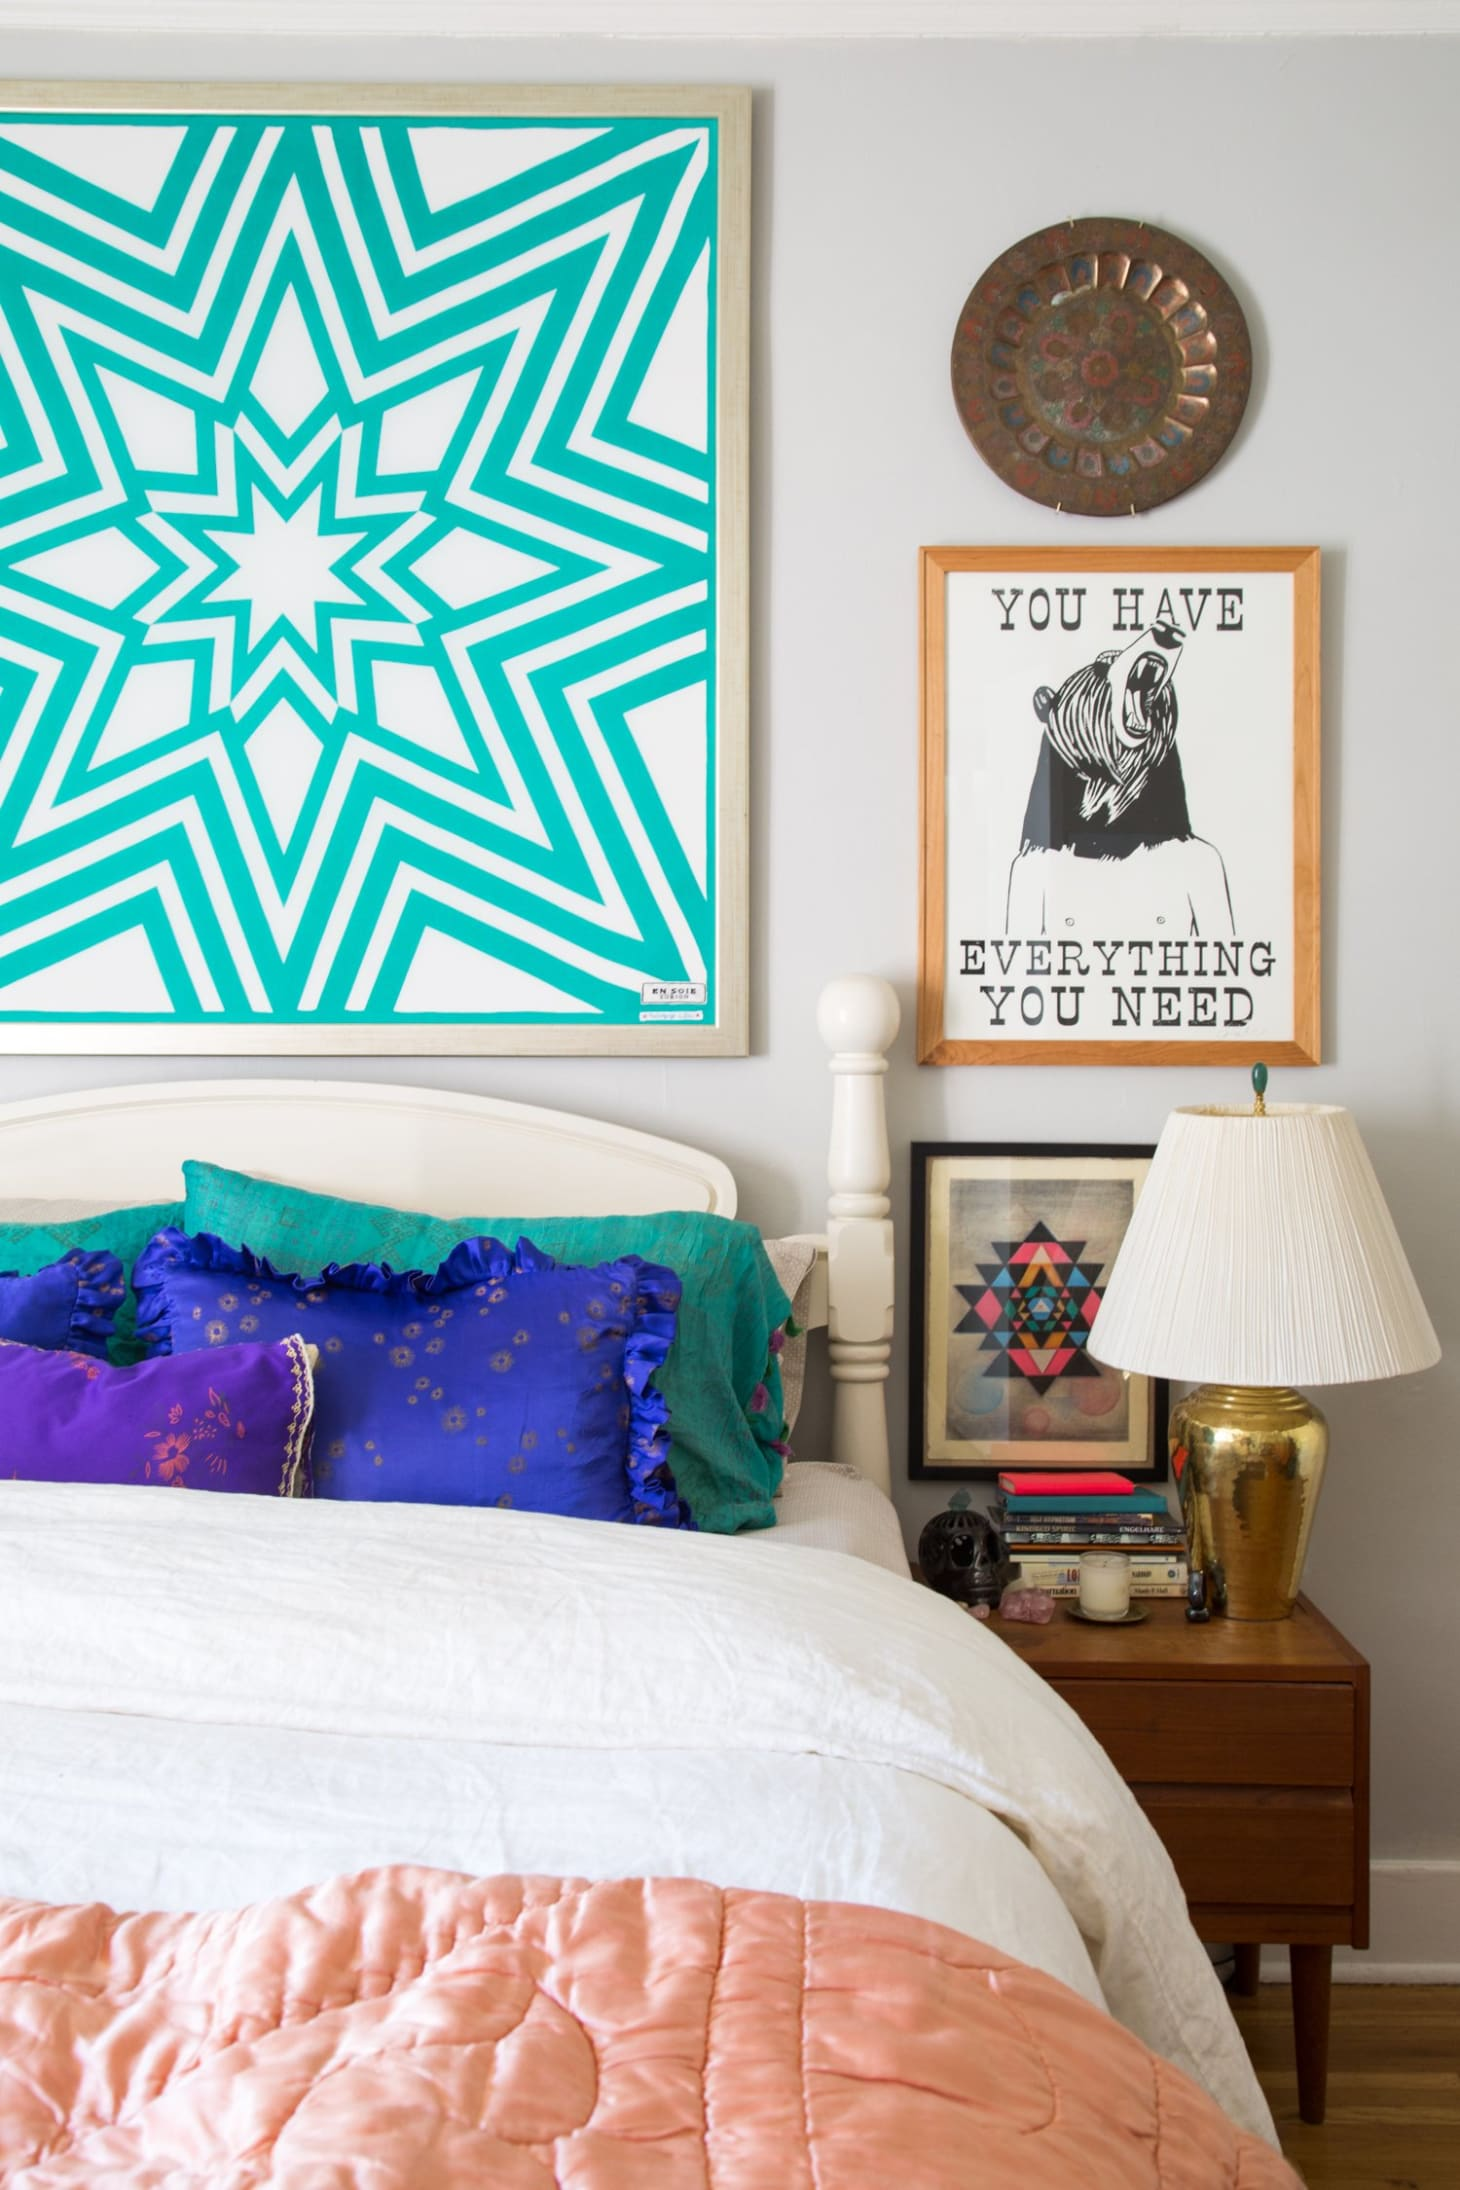 Working With White Walls: 6 Ideas From Bold Bedrooms of Real ...